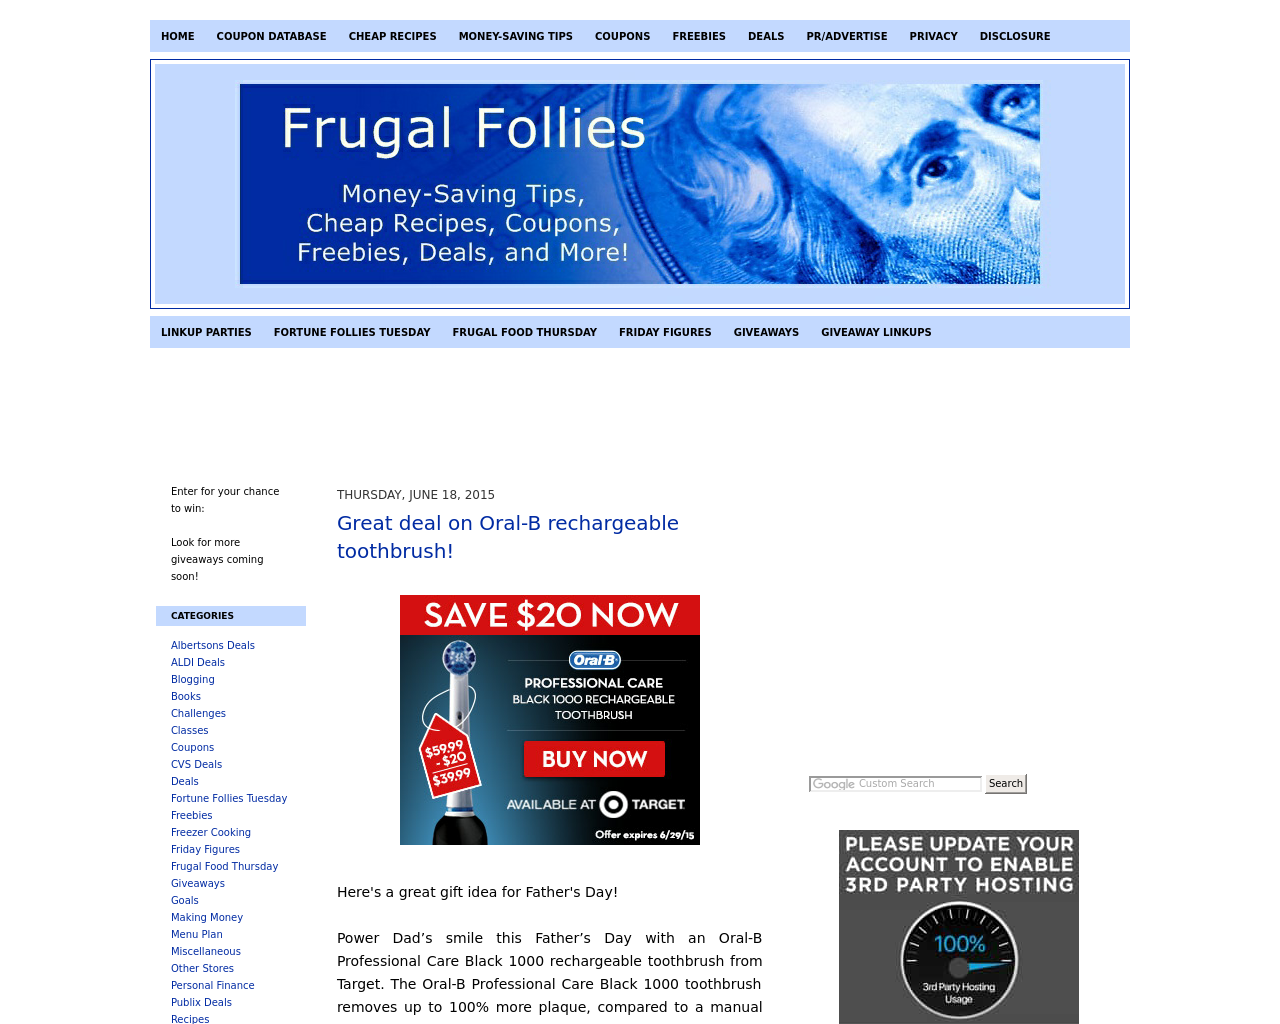 Frugal-Follies-Advertising-Reviews-Pricing